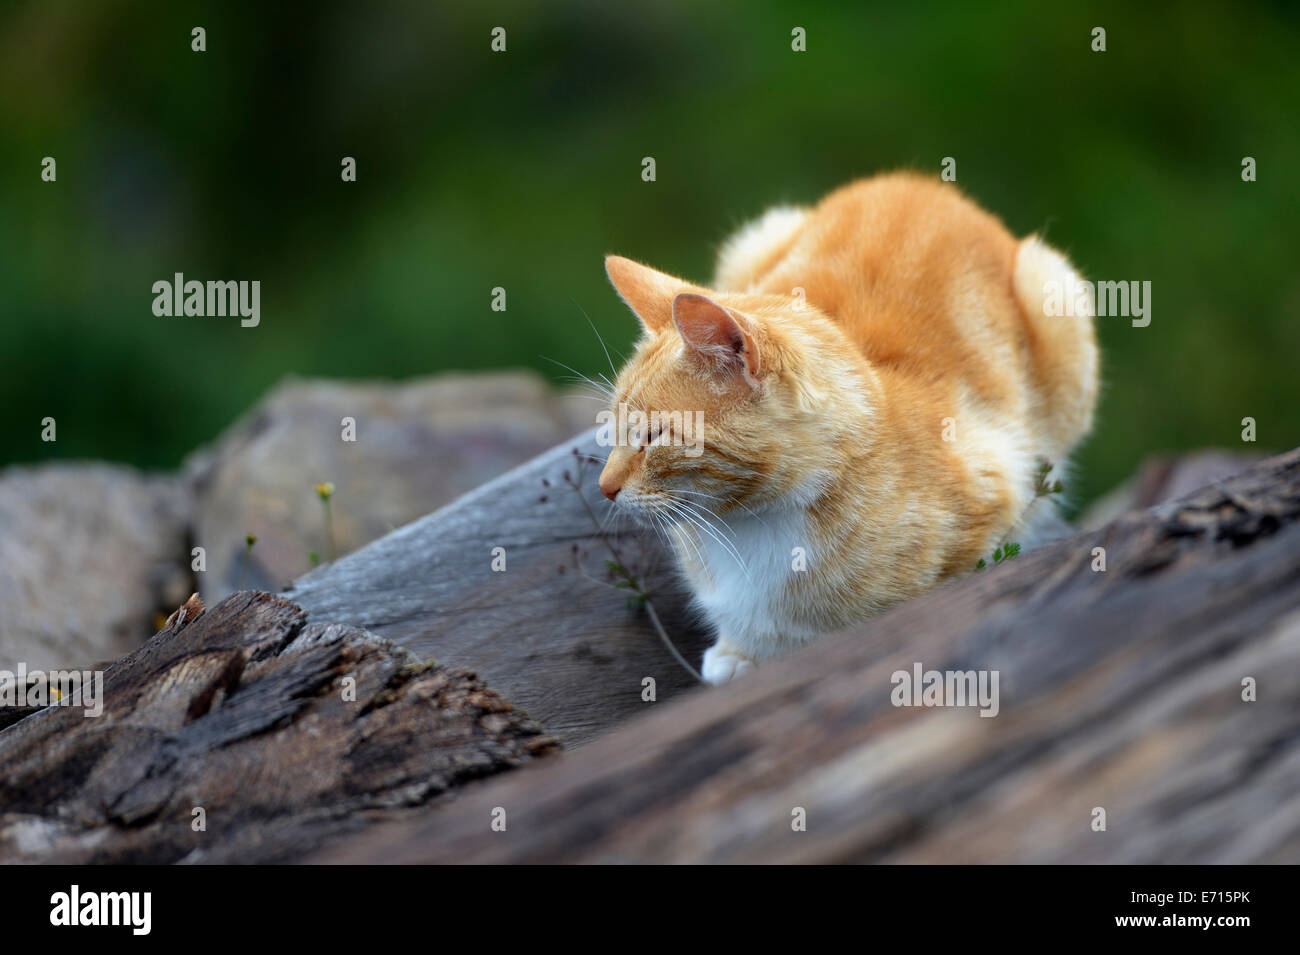 House cat, Felis silvestris catus, snoozing on logs - Stock Image